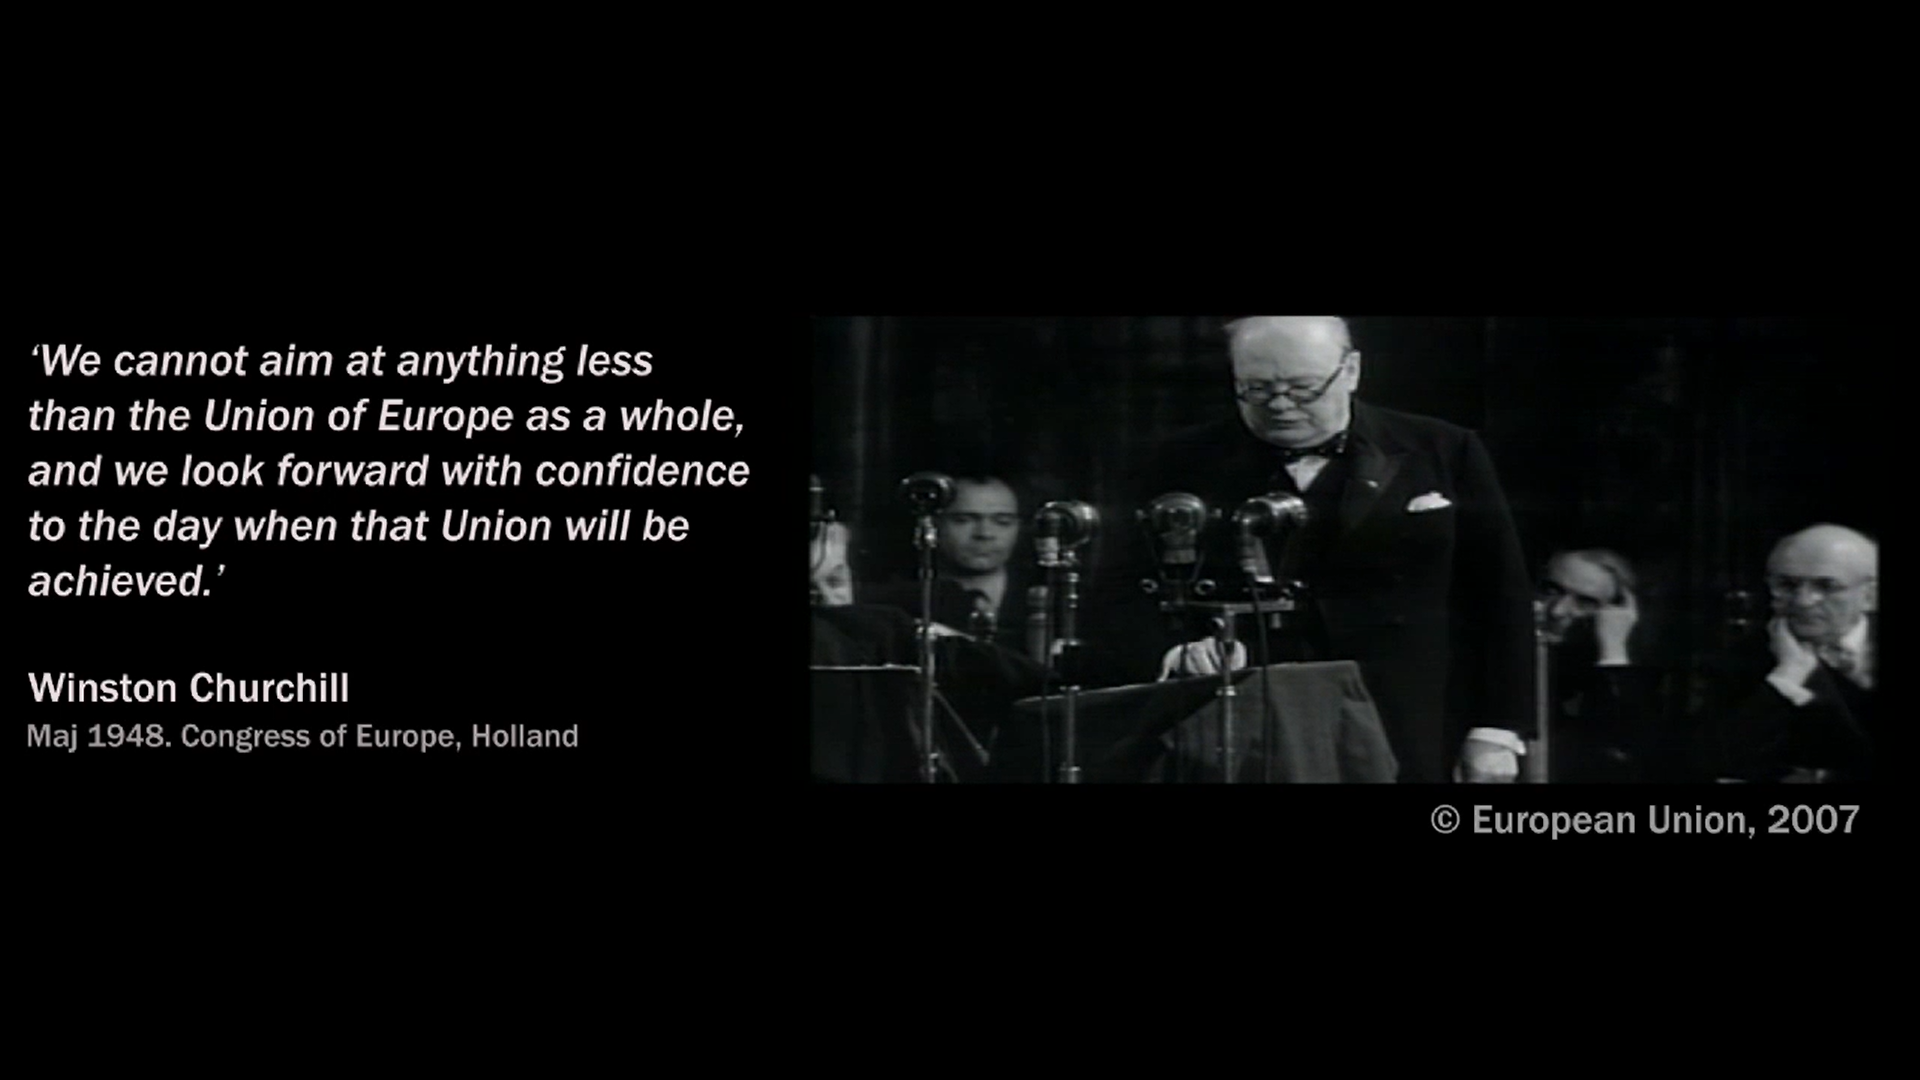 After World War II, Winston Churchill was a strong advocate of a European Union.